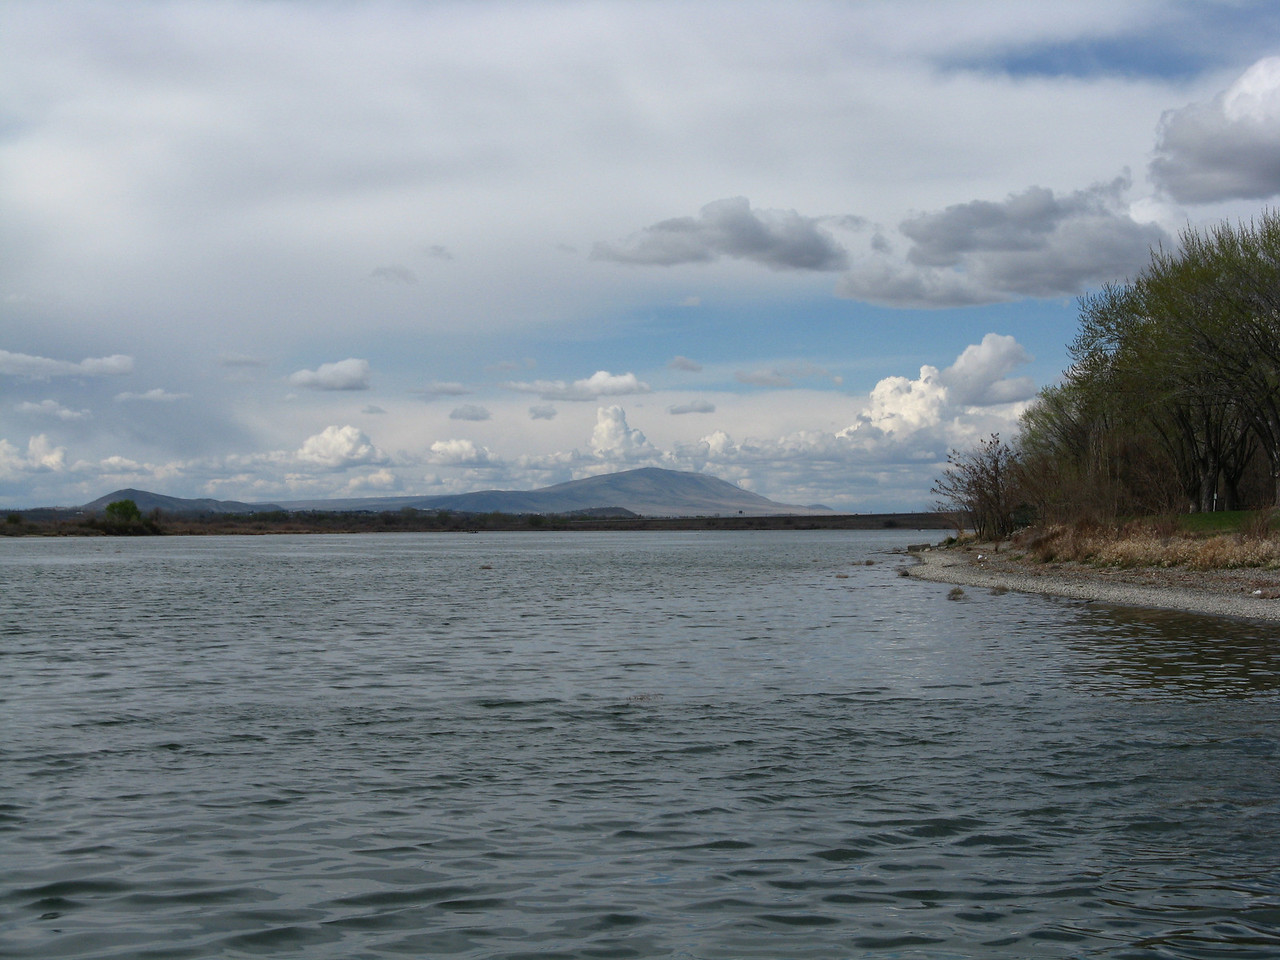 This view is looking upstream on the Columbia River near our turn around point.